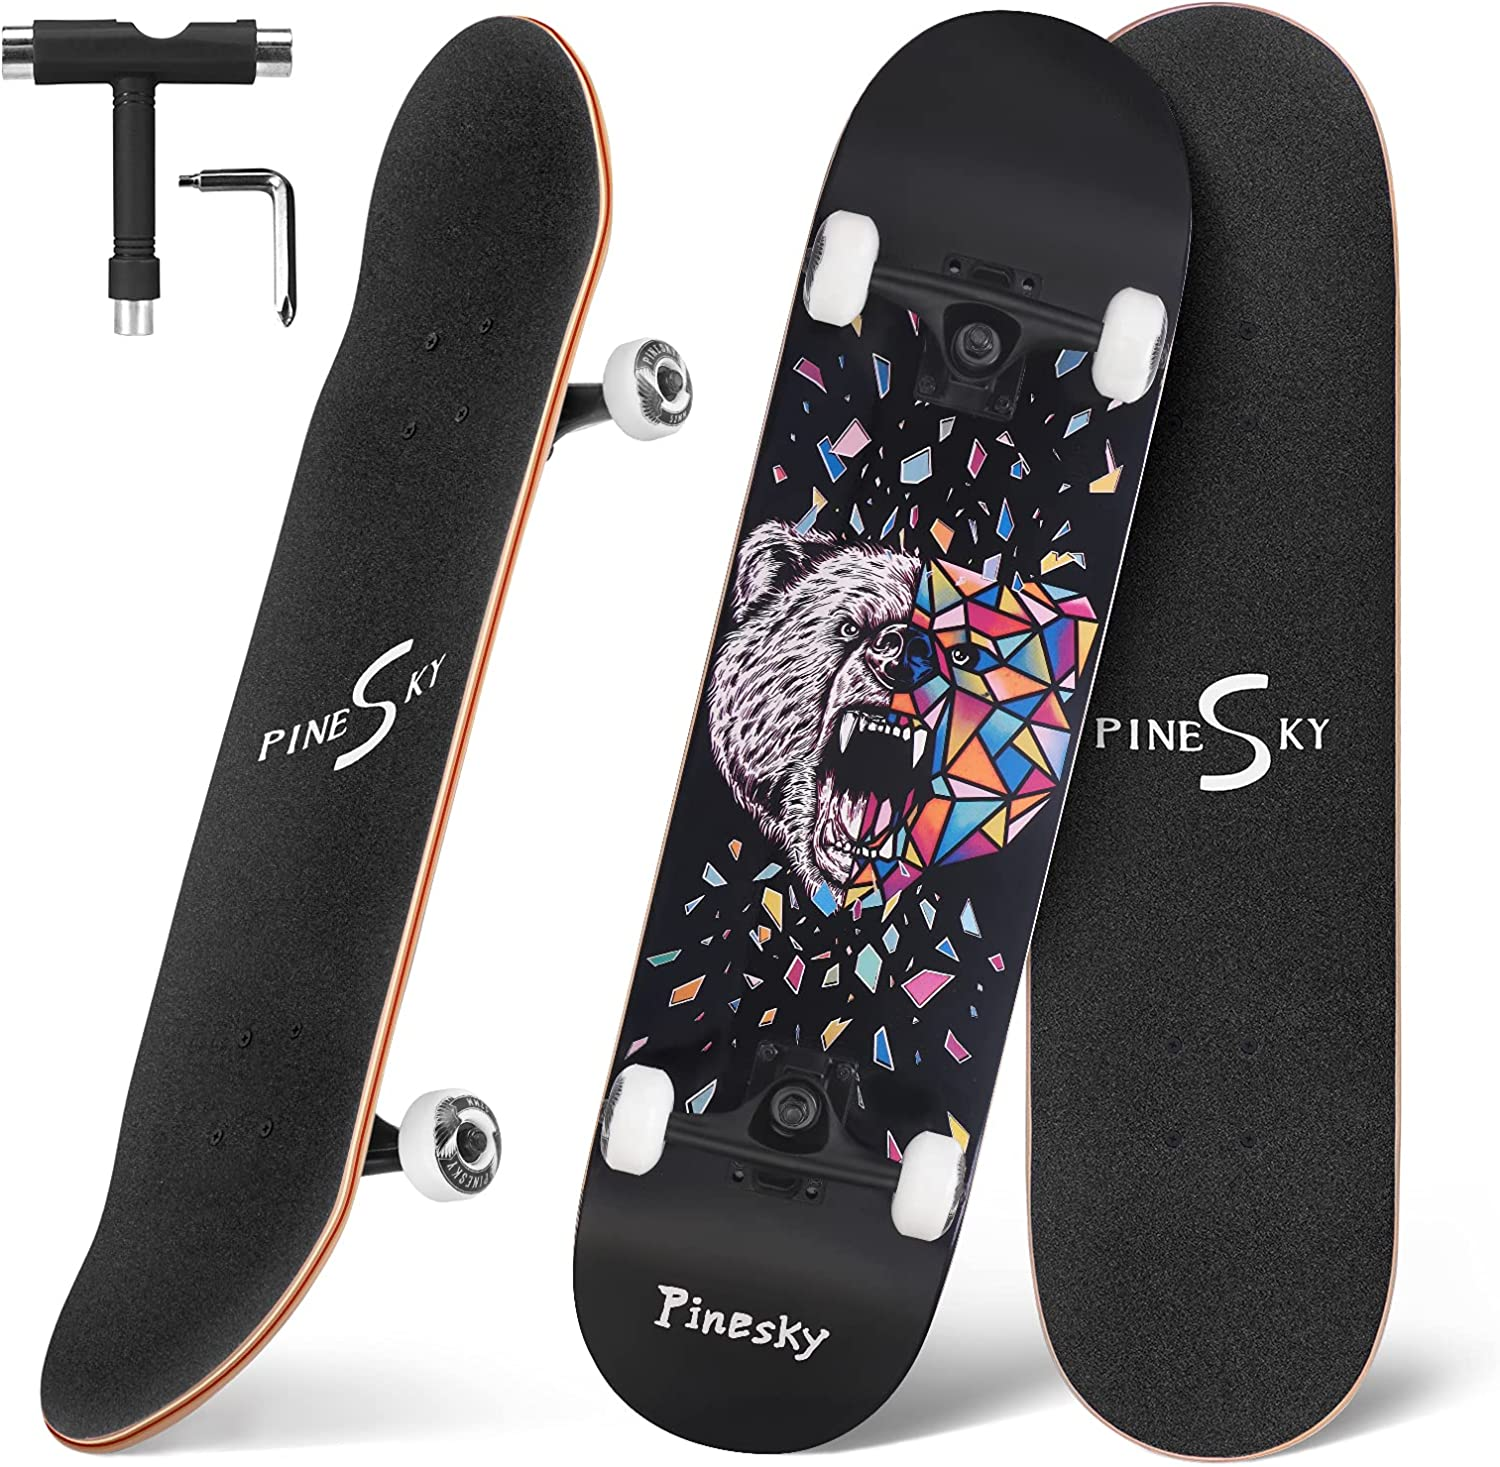 PINESKY Skateboards 31 Inch Complete Double Skateboard Animer Max 65% OFF and price revision Kick Skat